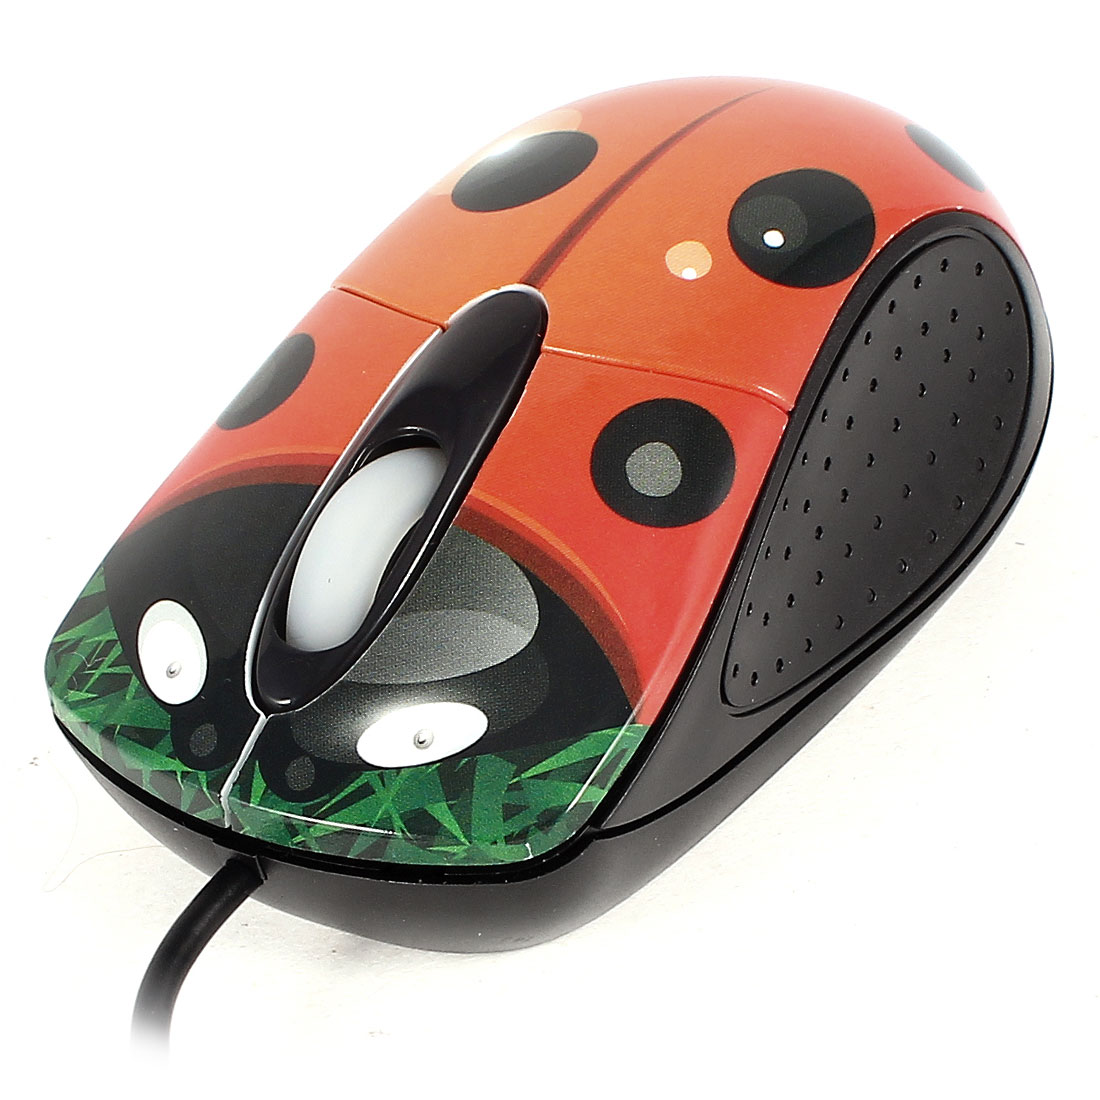 USB 2.0 3D 800DPI Wired Optical Mouse Black Orange for Notebook